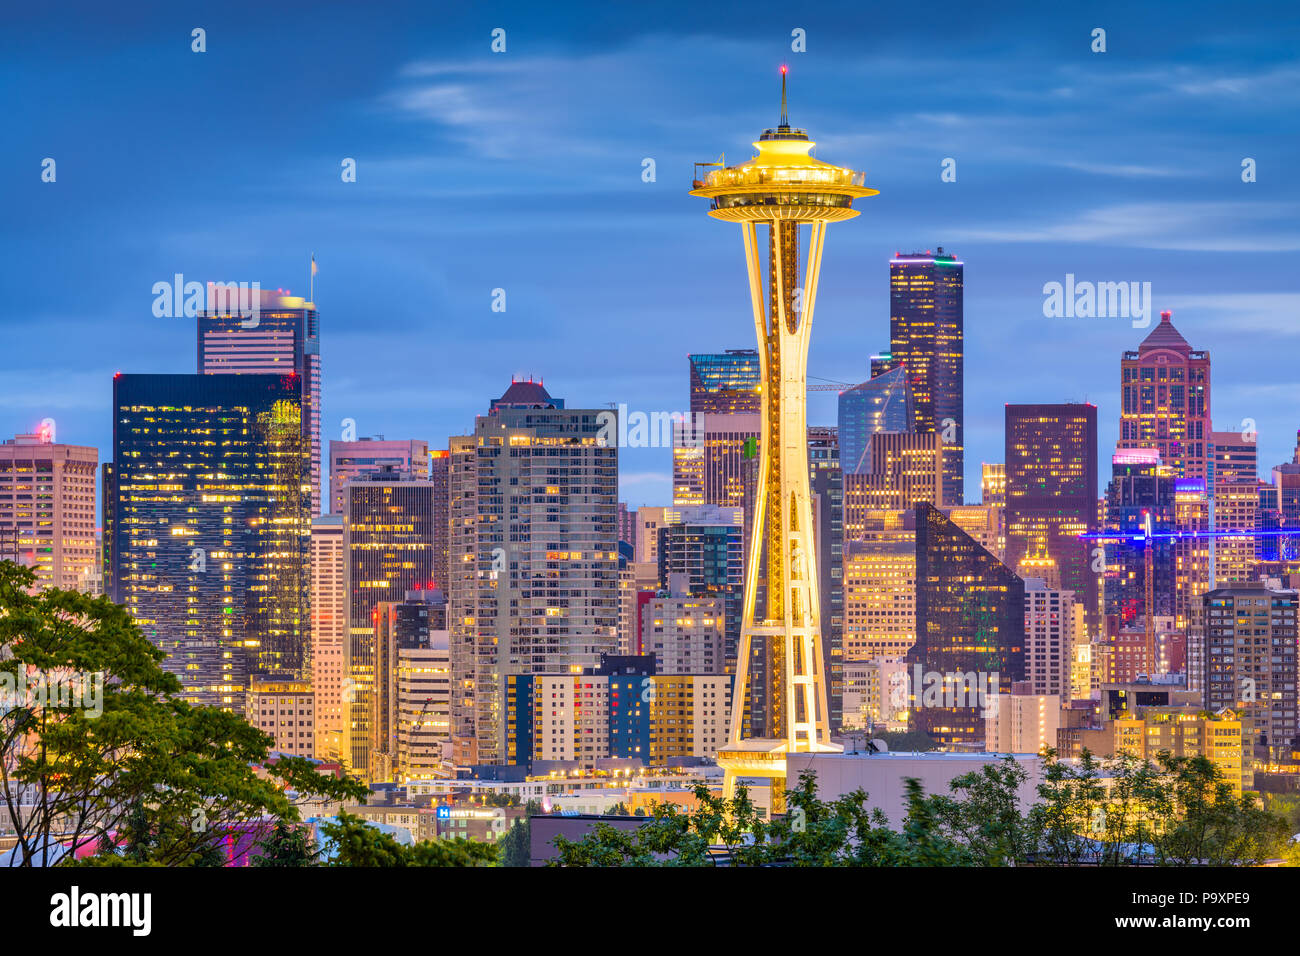 SEATTLE, WASHINGTON - JUNE 26, 2018: The Space Needle towers in front of the downtown Seattle skyline at dusk. - Stock Image